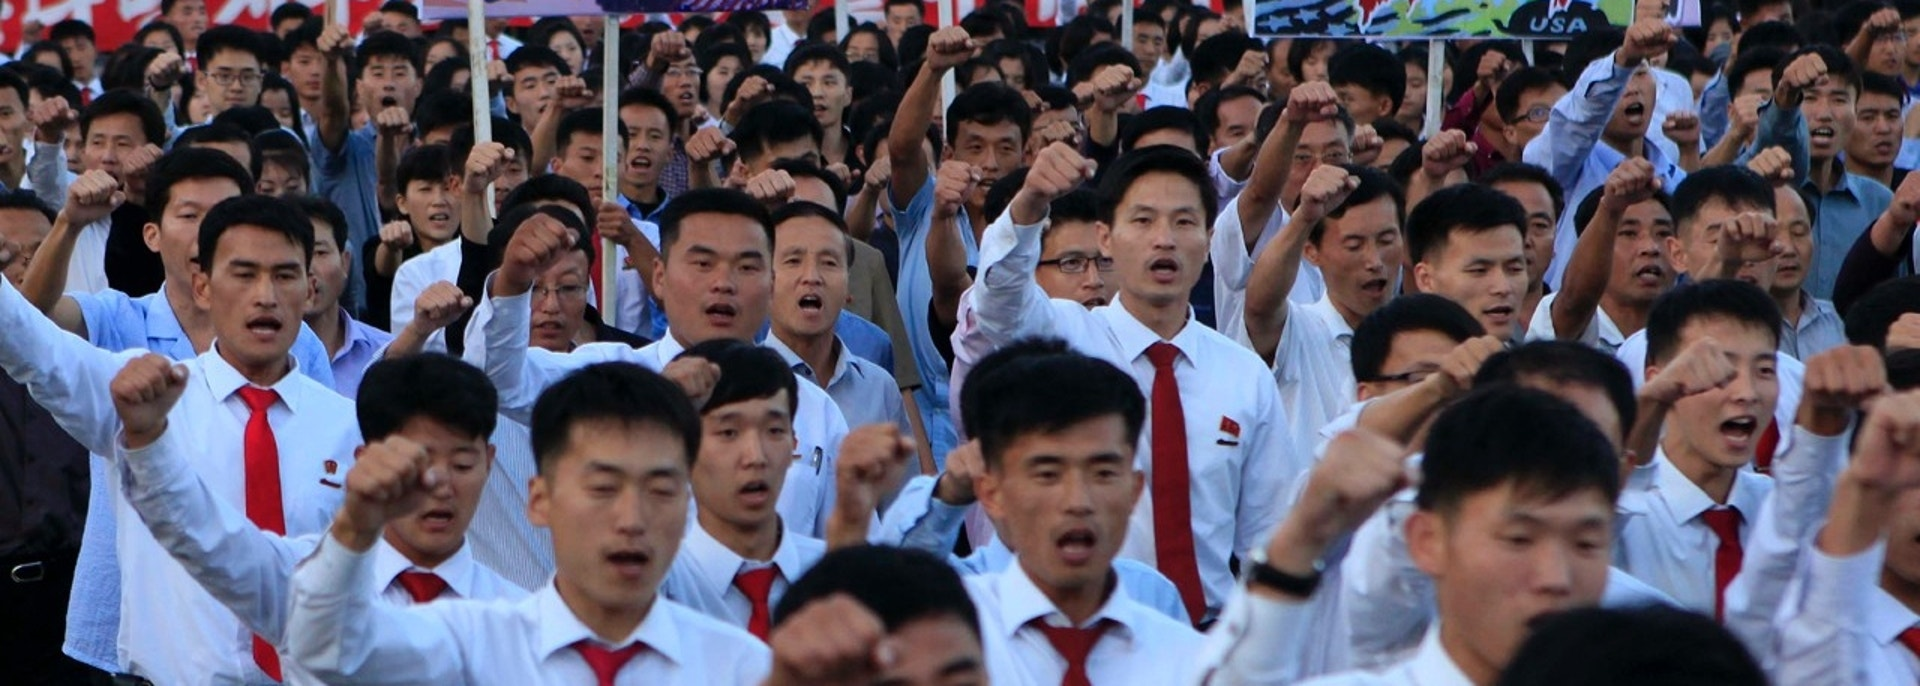 "DELETES NUMBER OF PEOPLE - North Koreans gather at Kim Il Sung Square to attend a mass rally against America on Saturday, Sept. 23, 2017, in Pyongyang, North Korea, a day after the country's leader issued a rare statement attacking Donald Trump. The sign on the left reads ""decisive revenge"" and the sign on the right reads ""death to the American imperialists."" (AP Photo/Jon Chol Jin)"